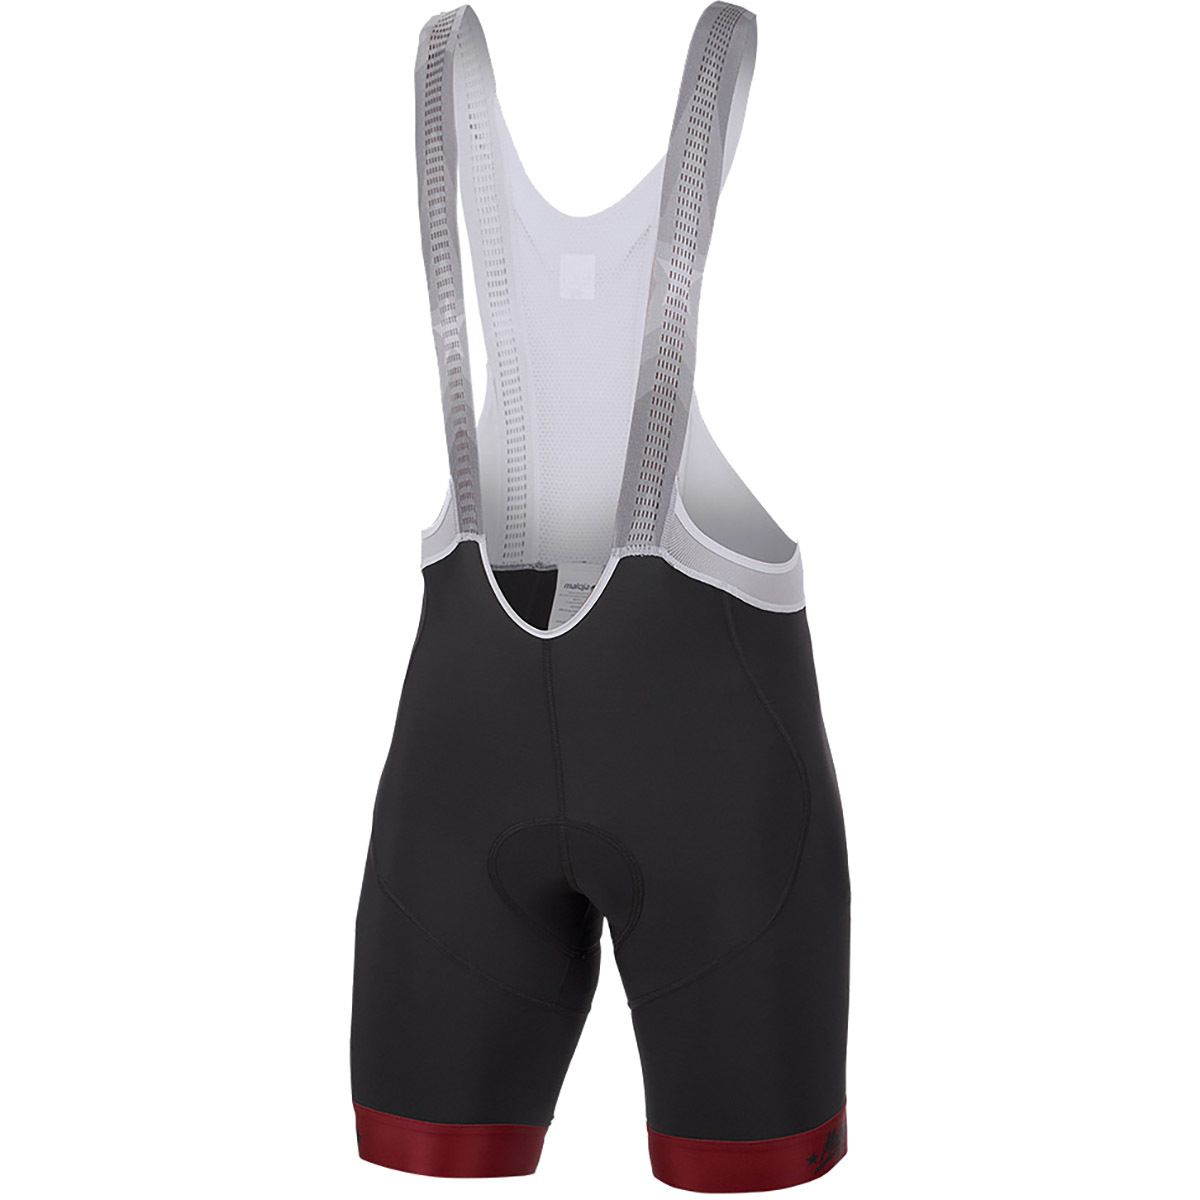 Maloja Drewm Cycling Bib Shorts Men S Competitive Cyclist